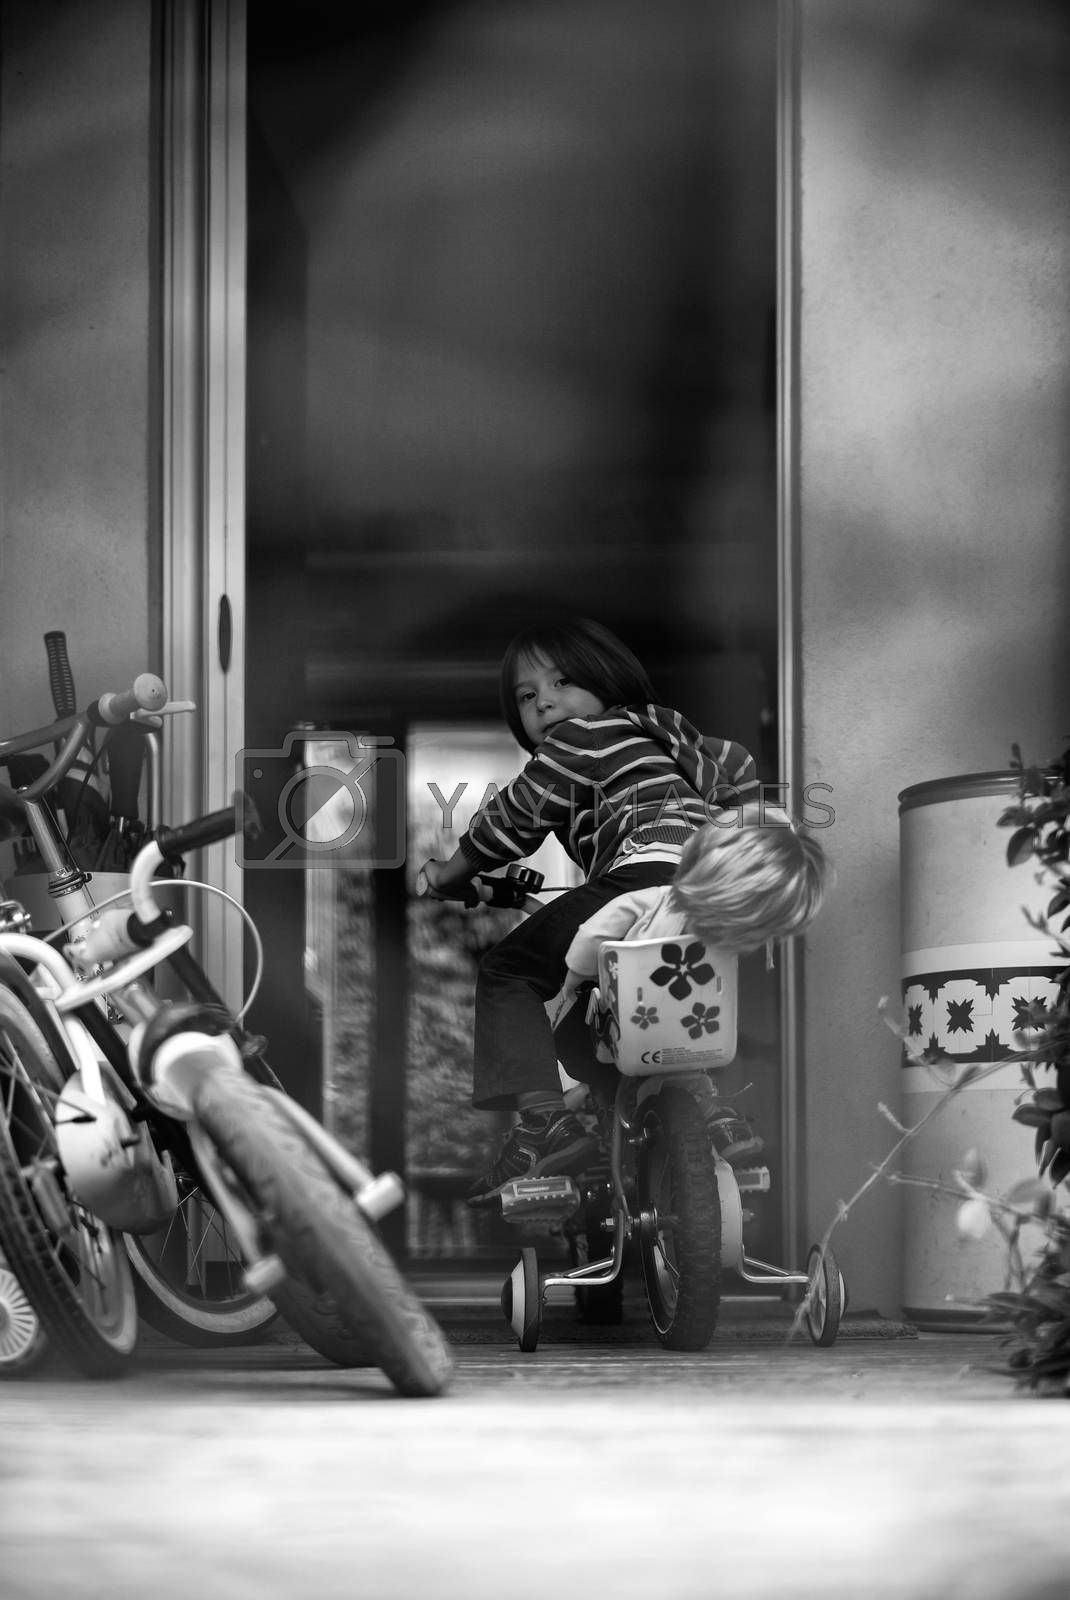 View of Child playing with the bike